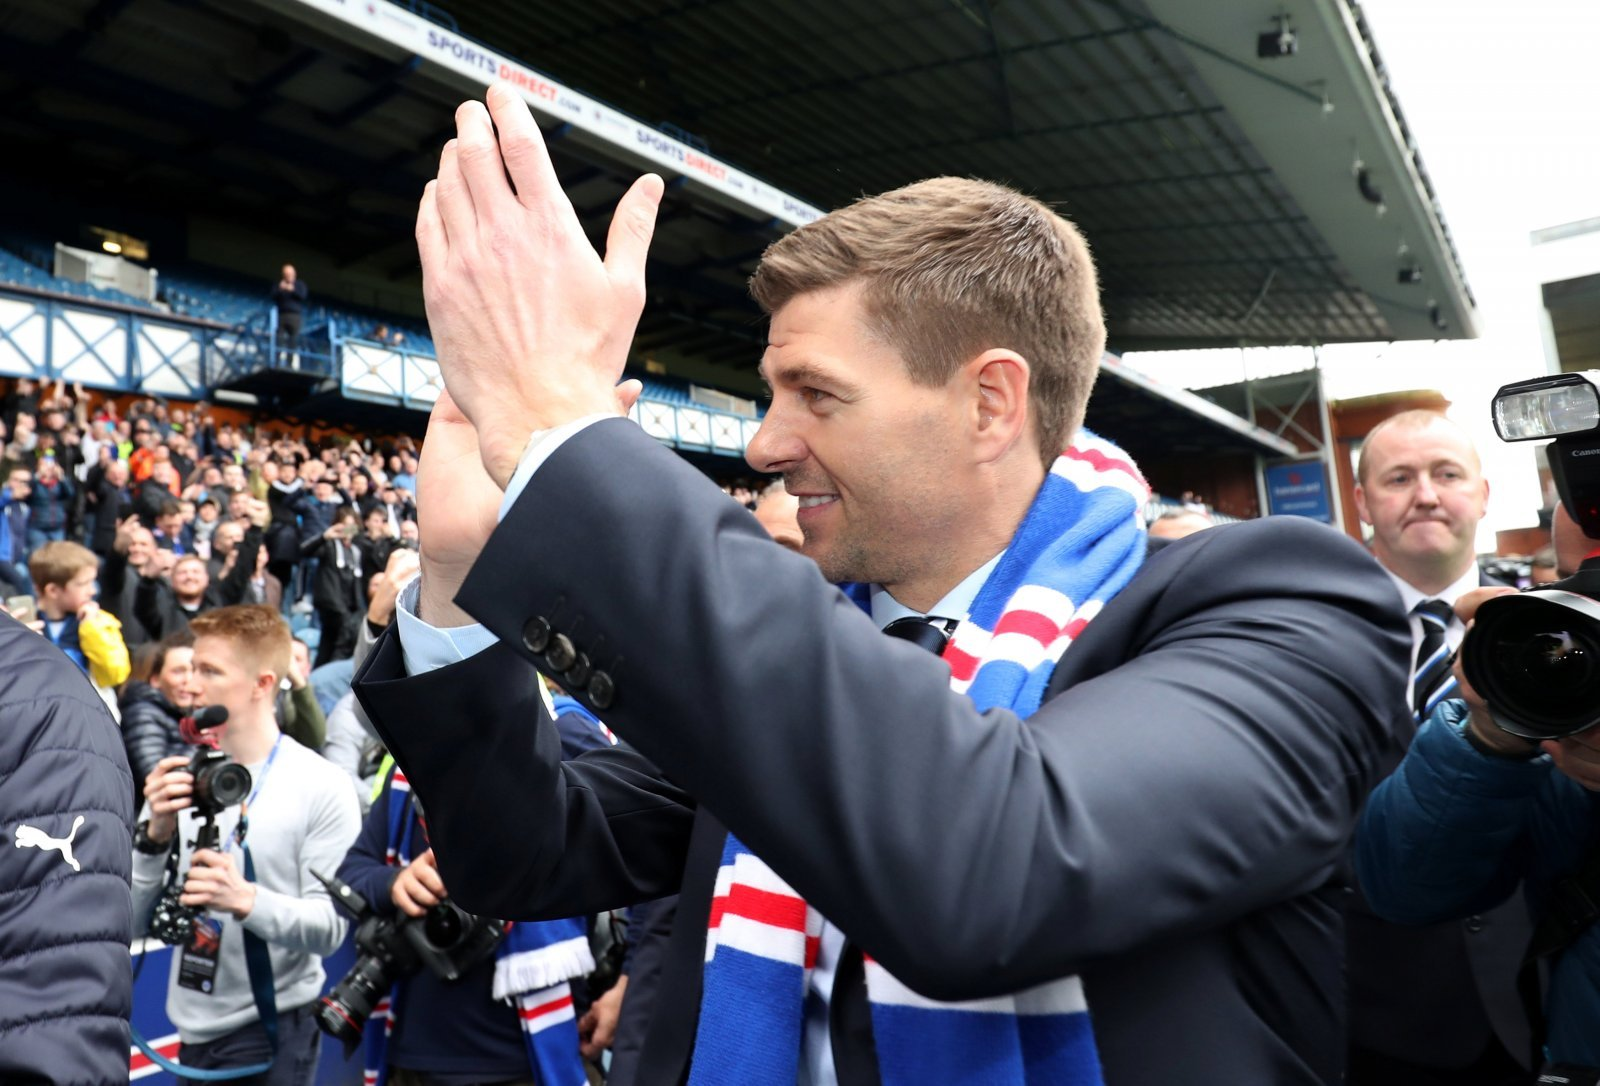 Rangers fans fuming Gerrard didn't bleed the youth into the team last night